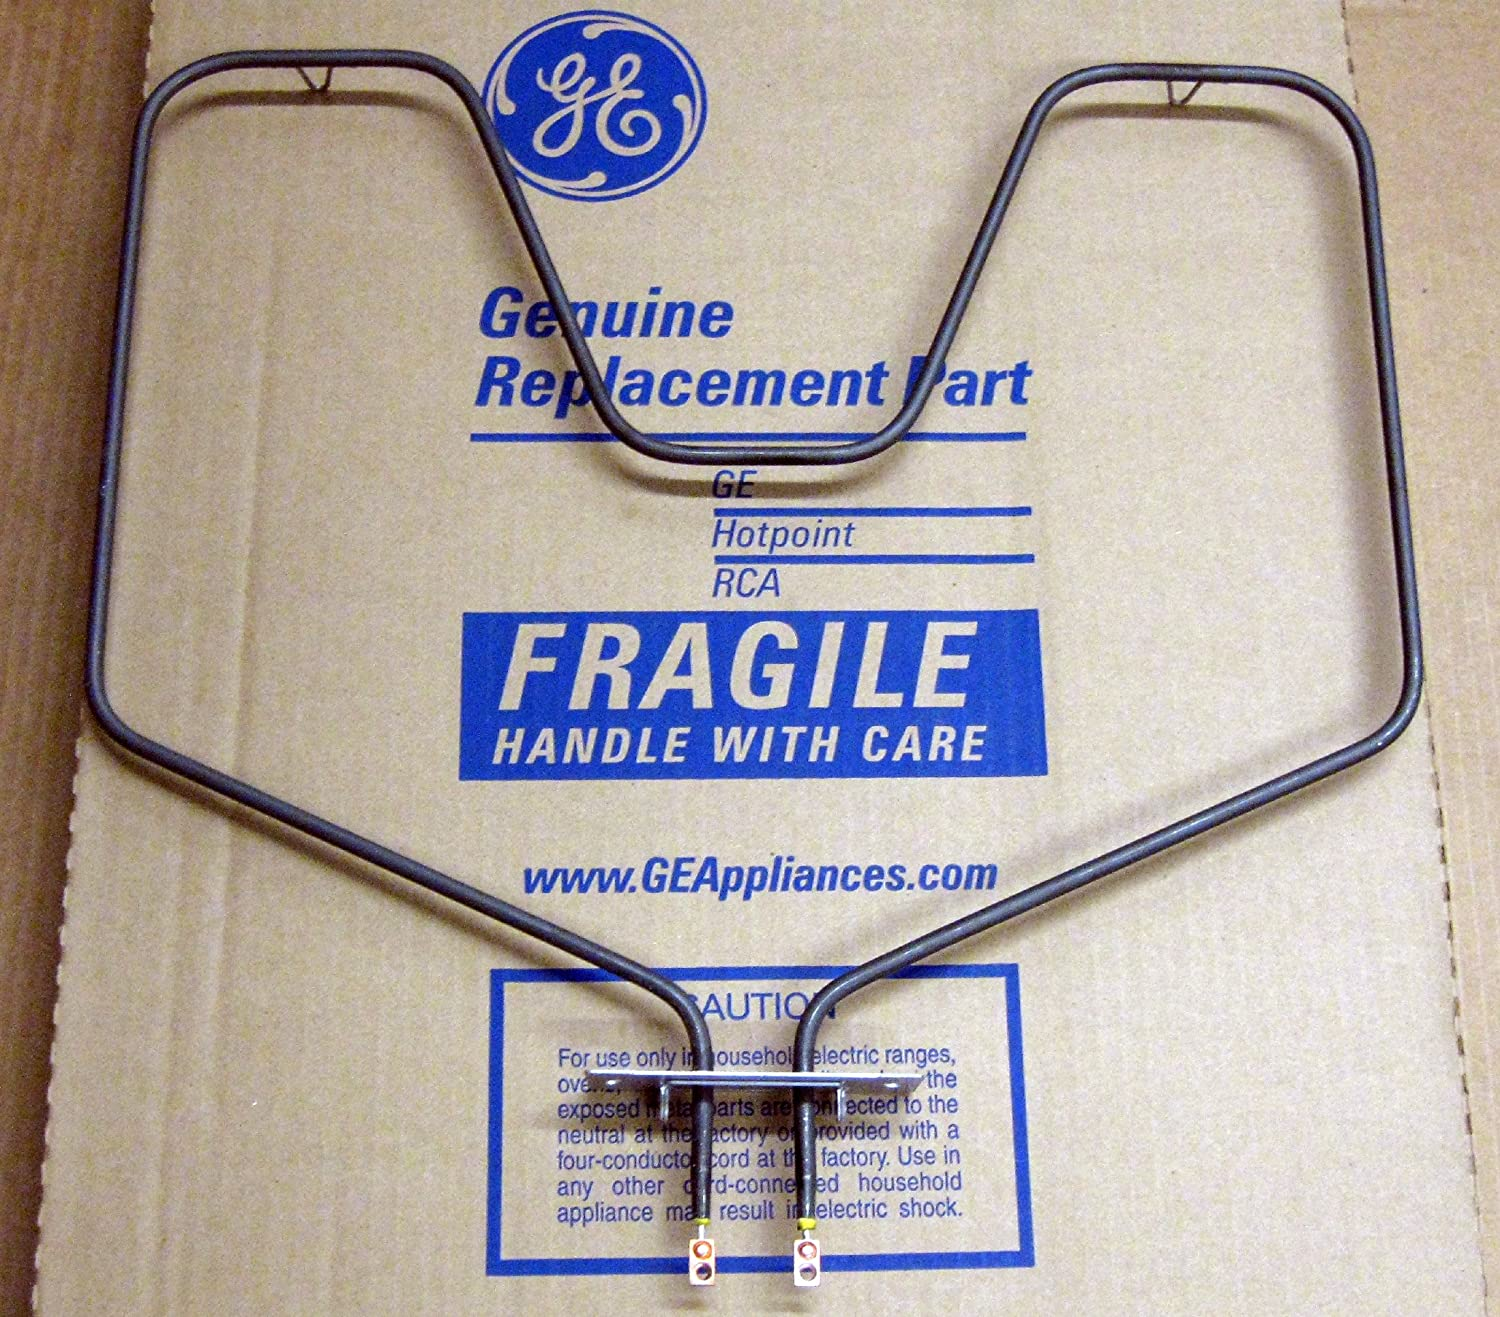 GE WB44X5082 Bake Element for Self Cleaning GE, Hotpoint, and RCA Ovens